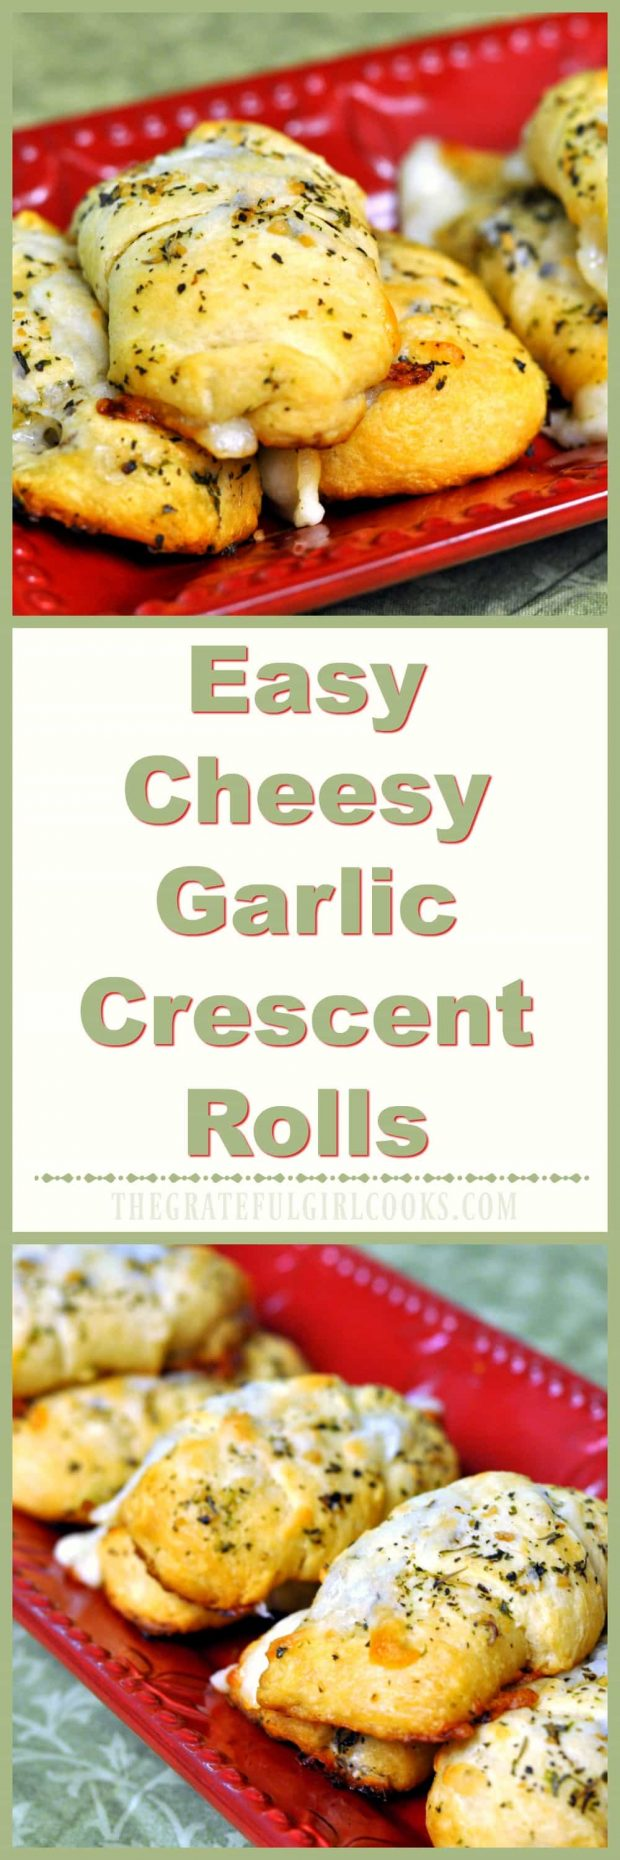 Easy Cheesy Garlic Crescent Rolls / The Grateful Girl Cooks!